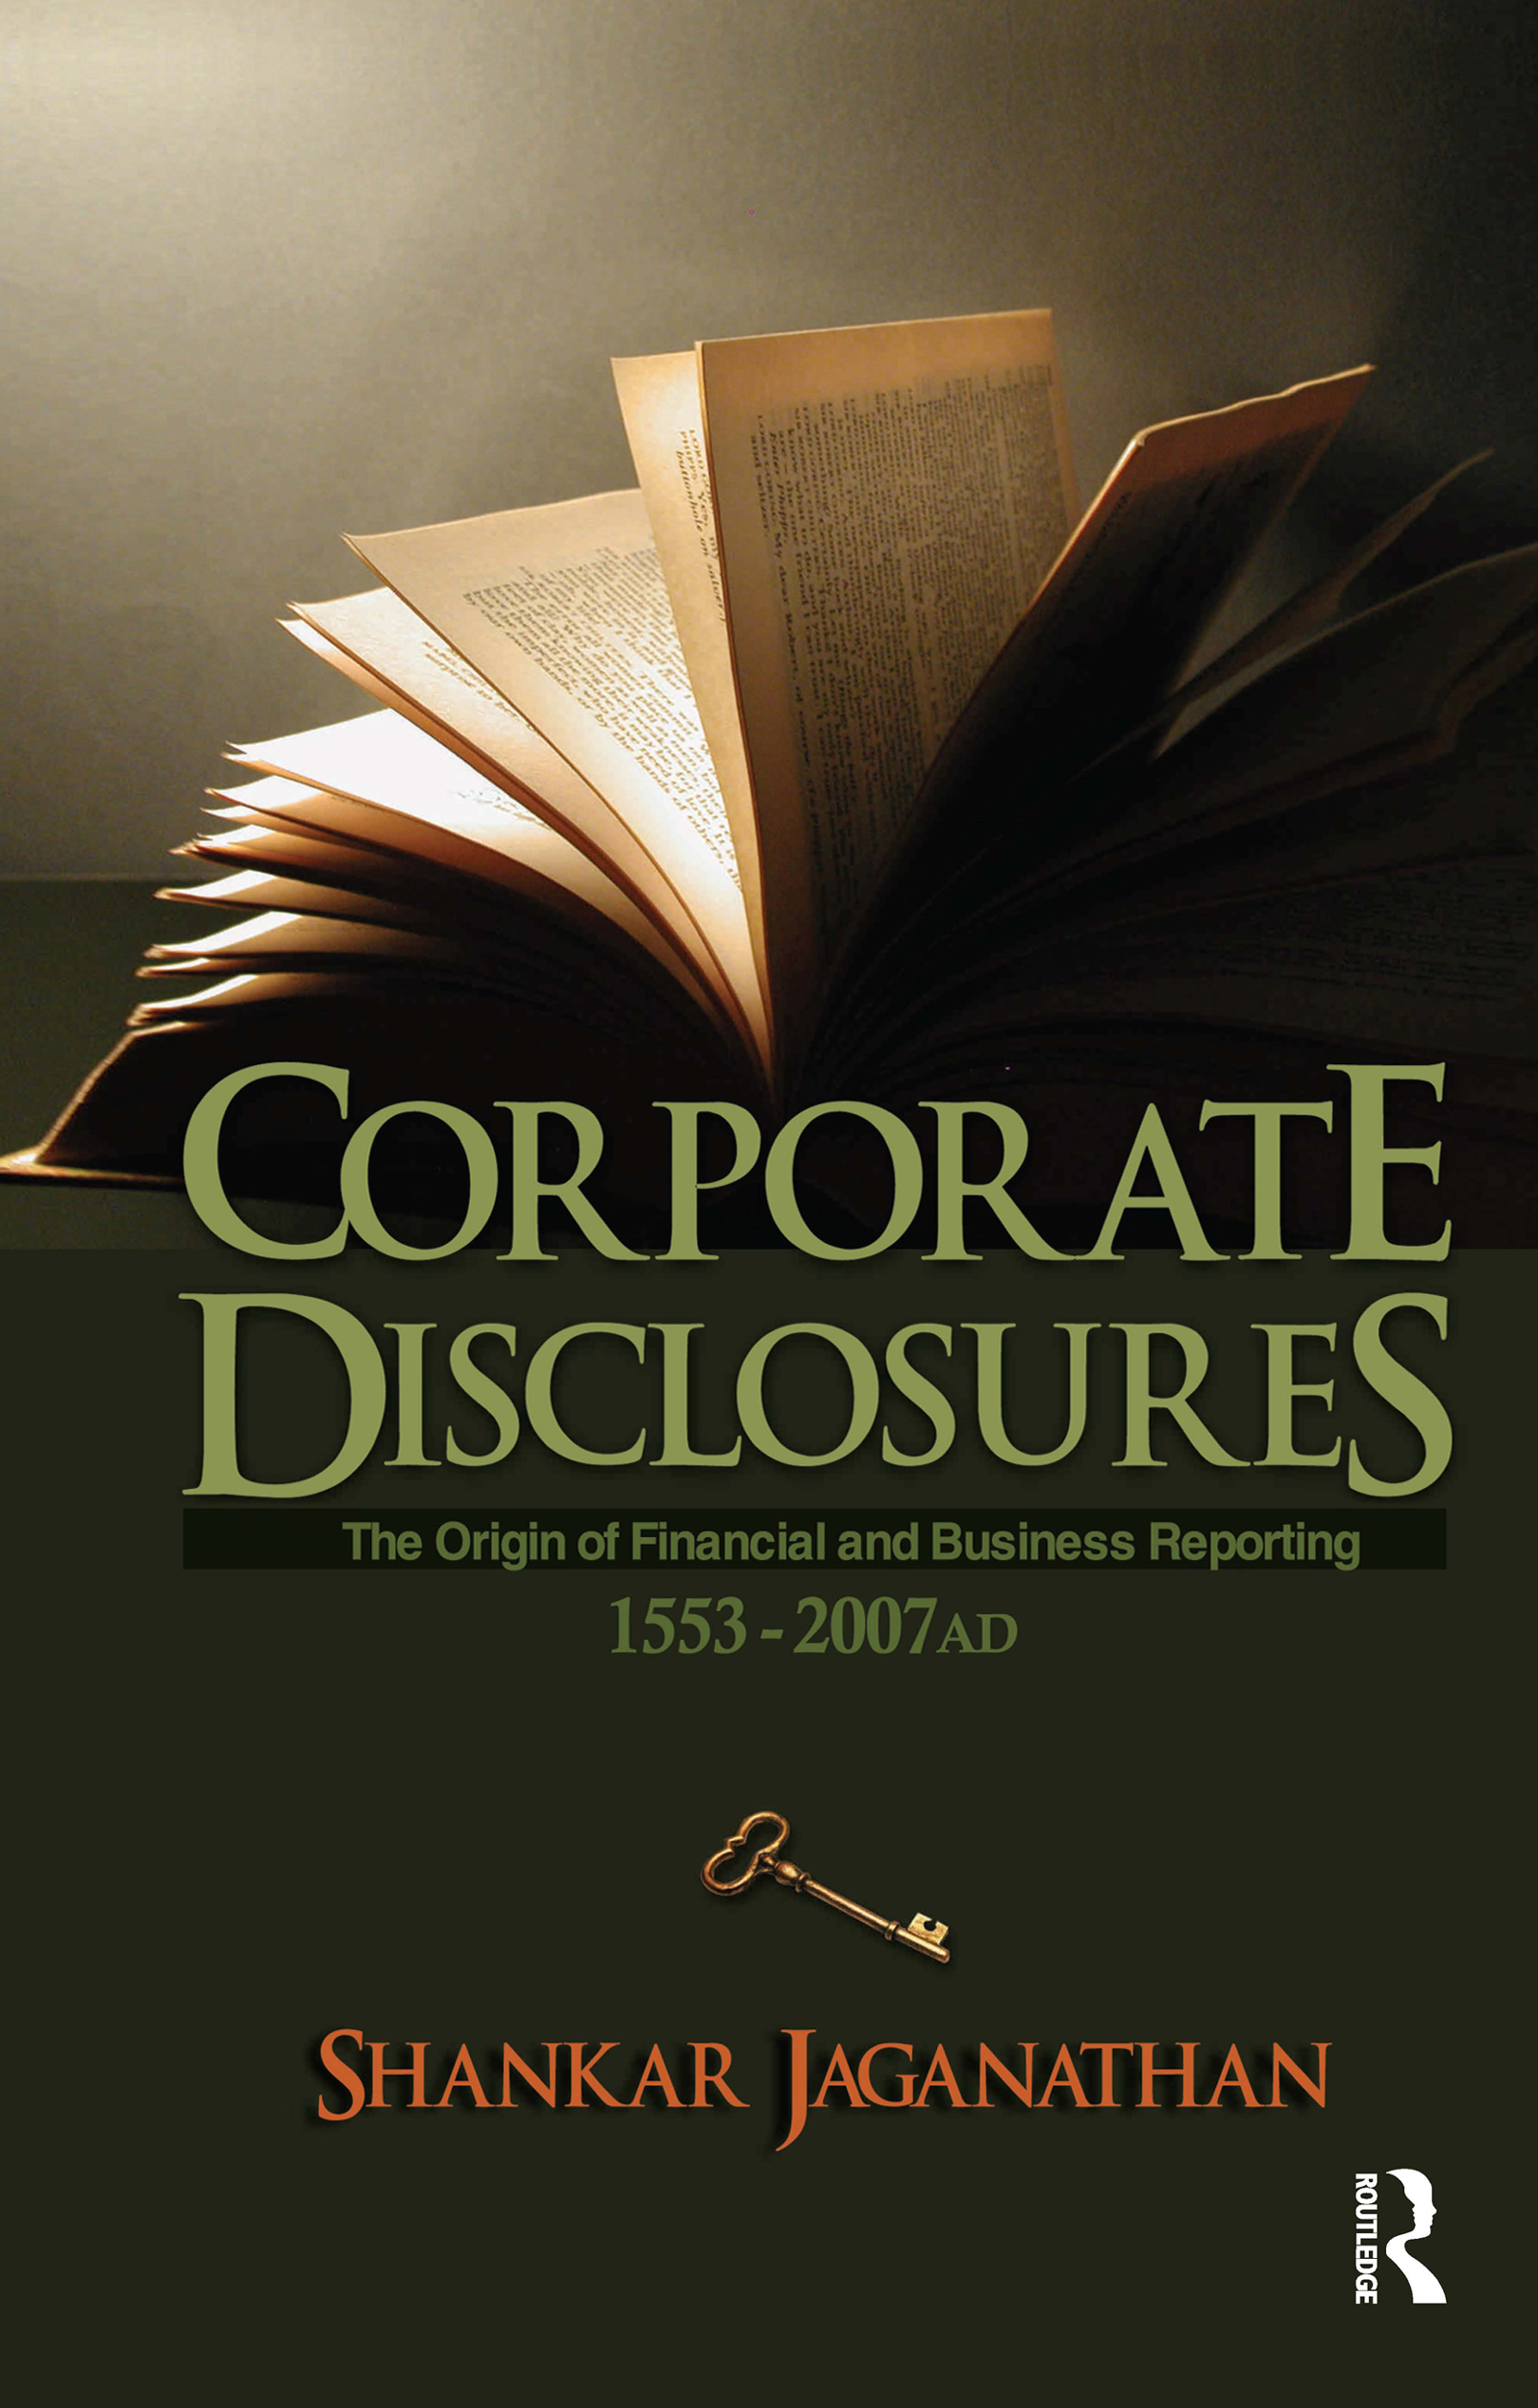 Corporate Disclosures: The Origin of Financial and Business Reporting 1553 - 2007 AD book cover